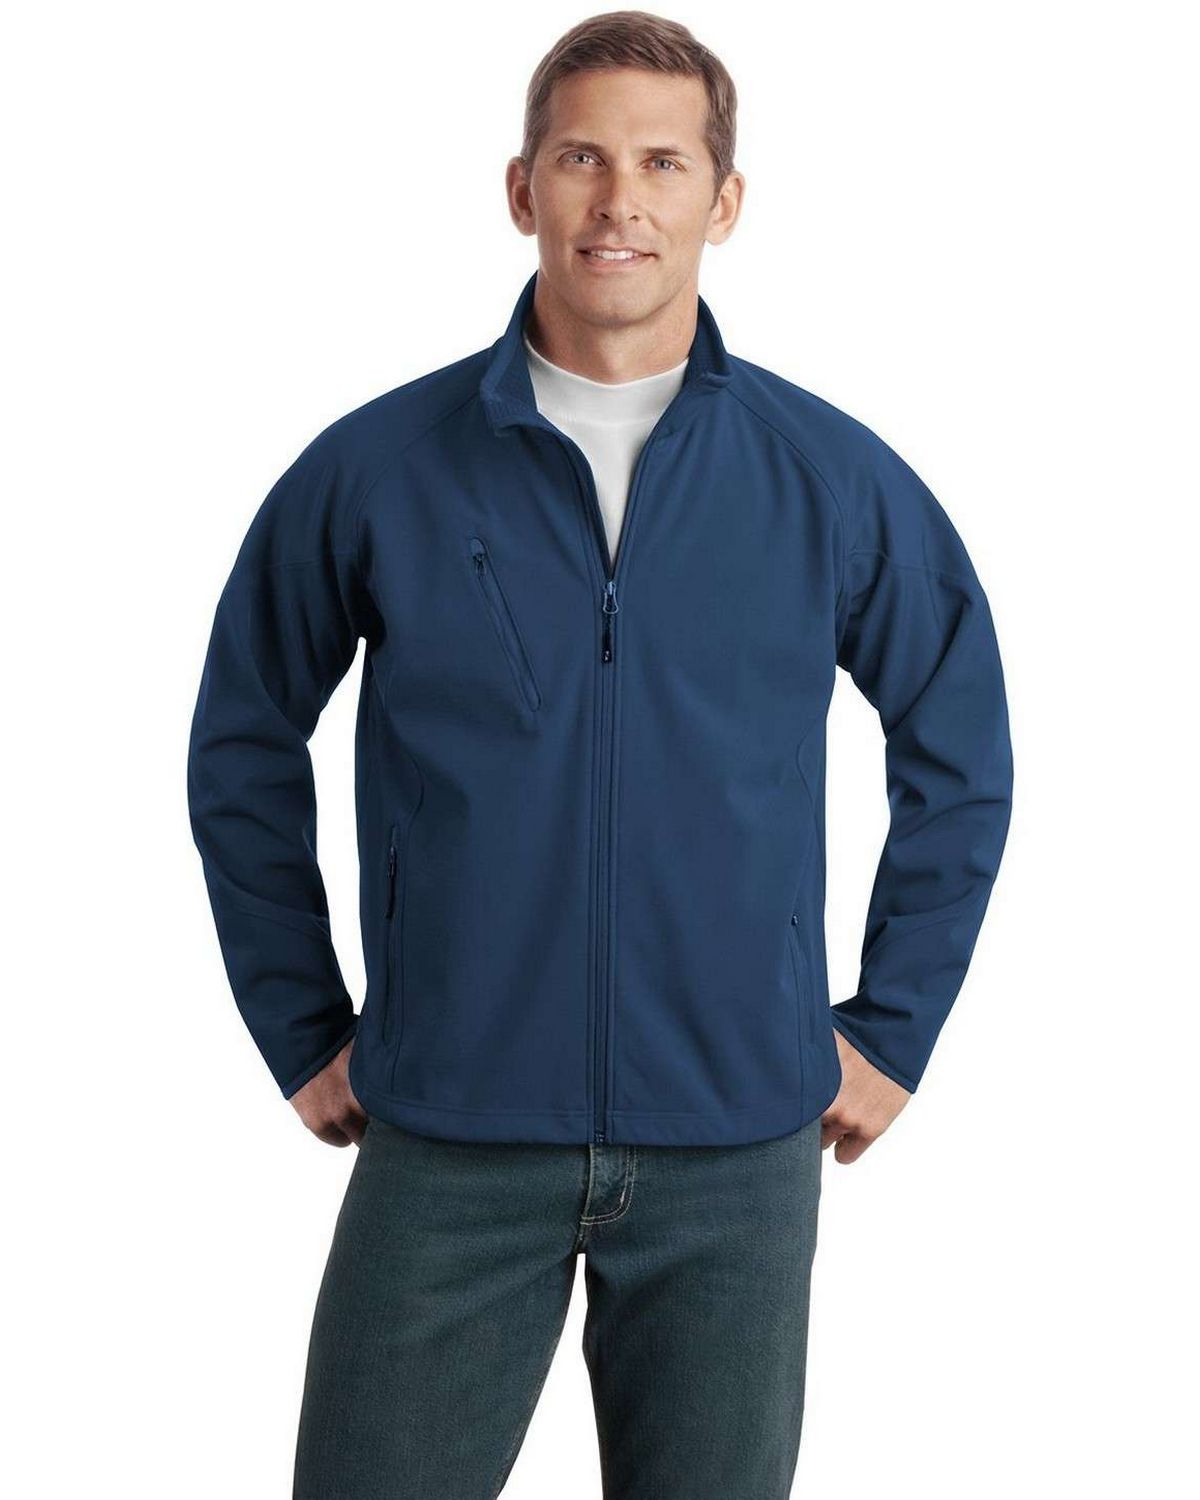 Port Authority J705 Textured Soft Shell Jacket